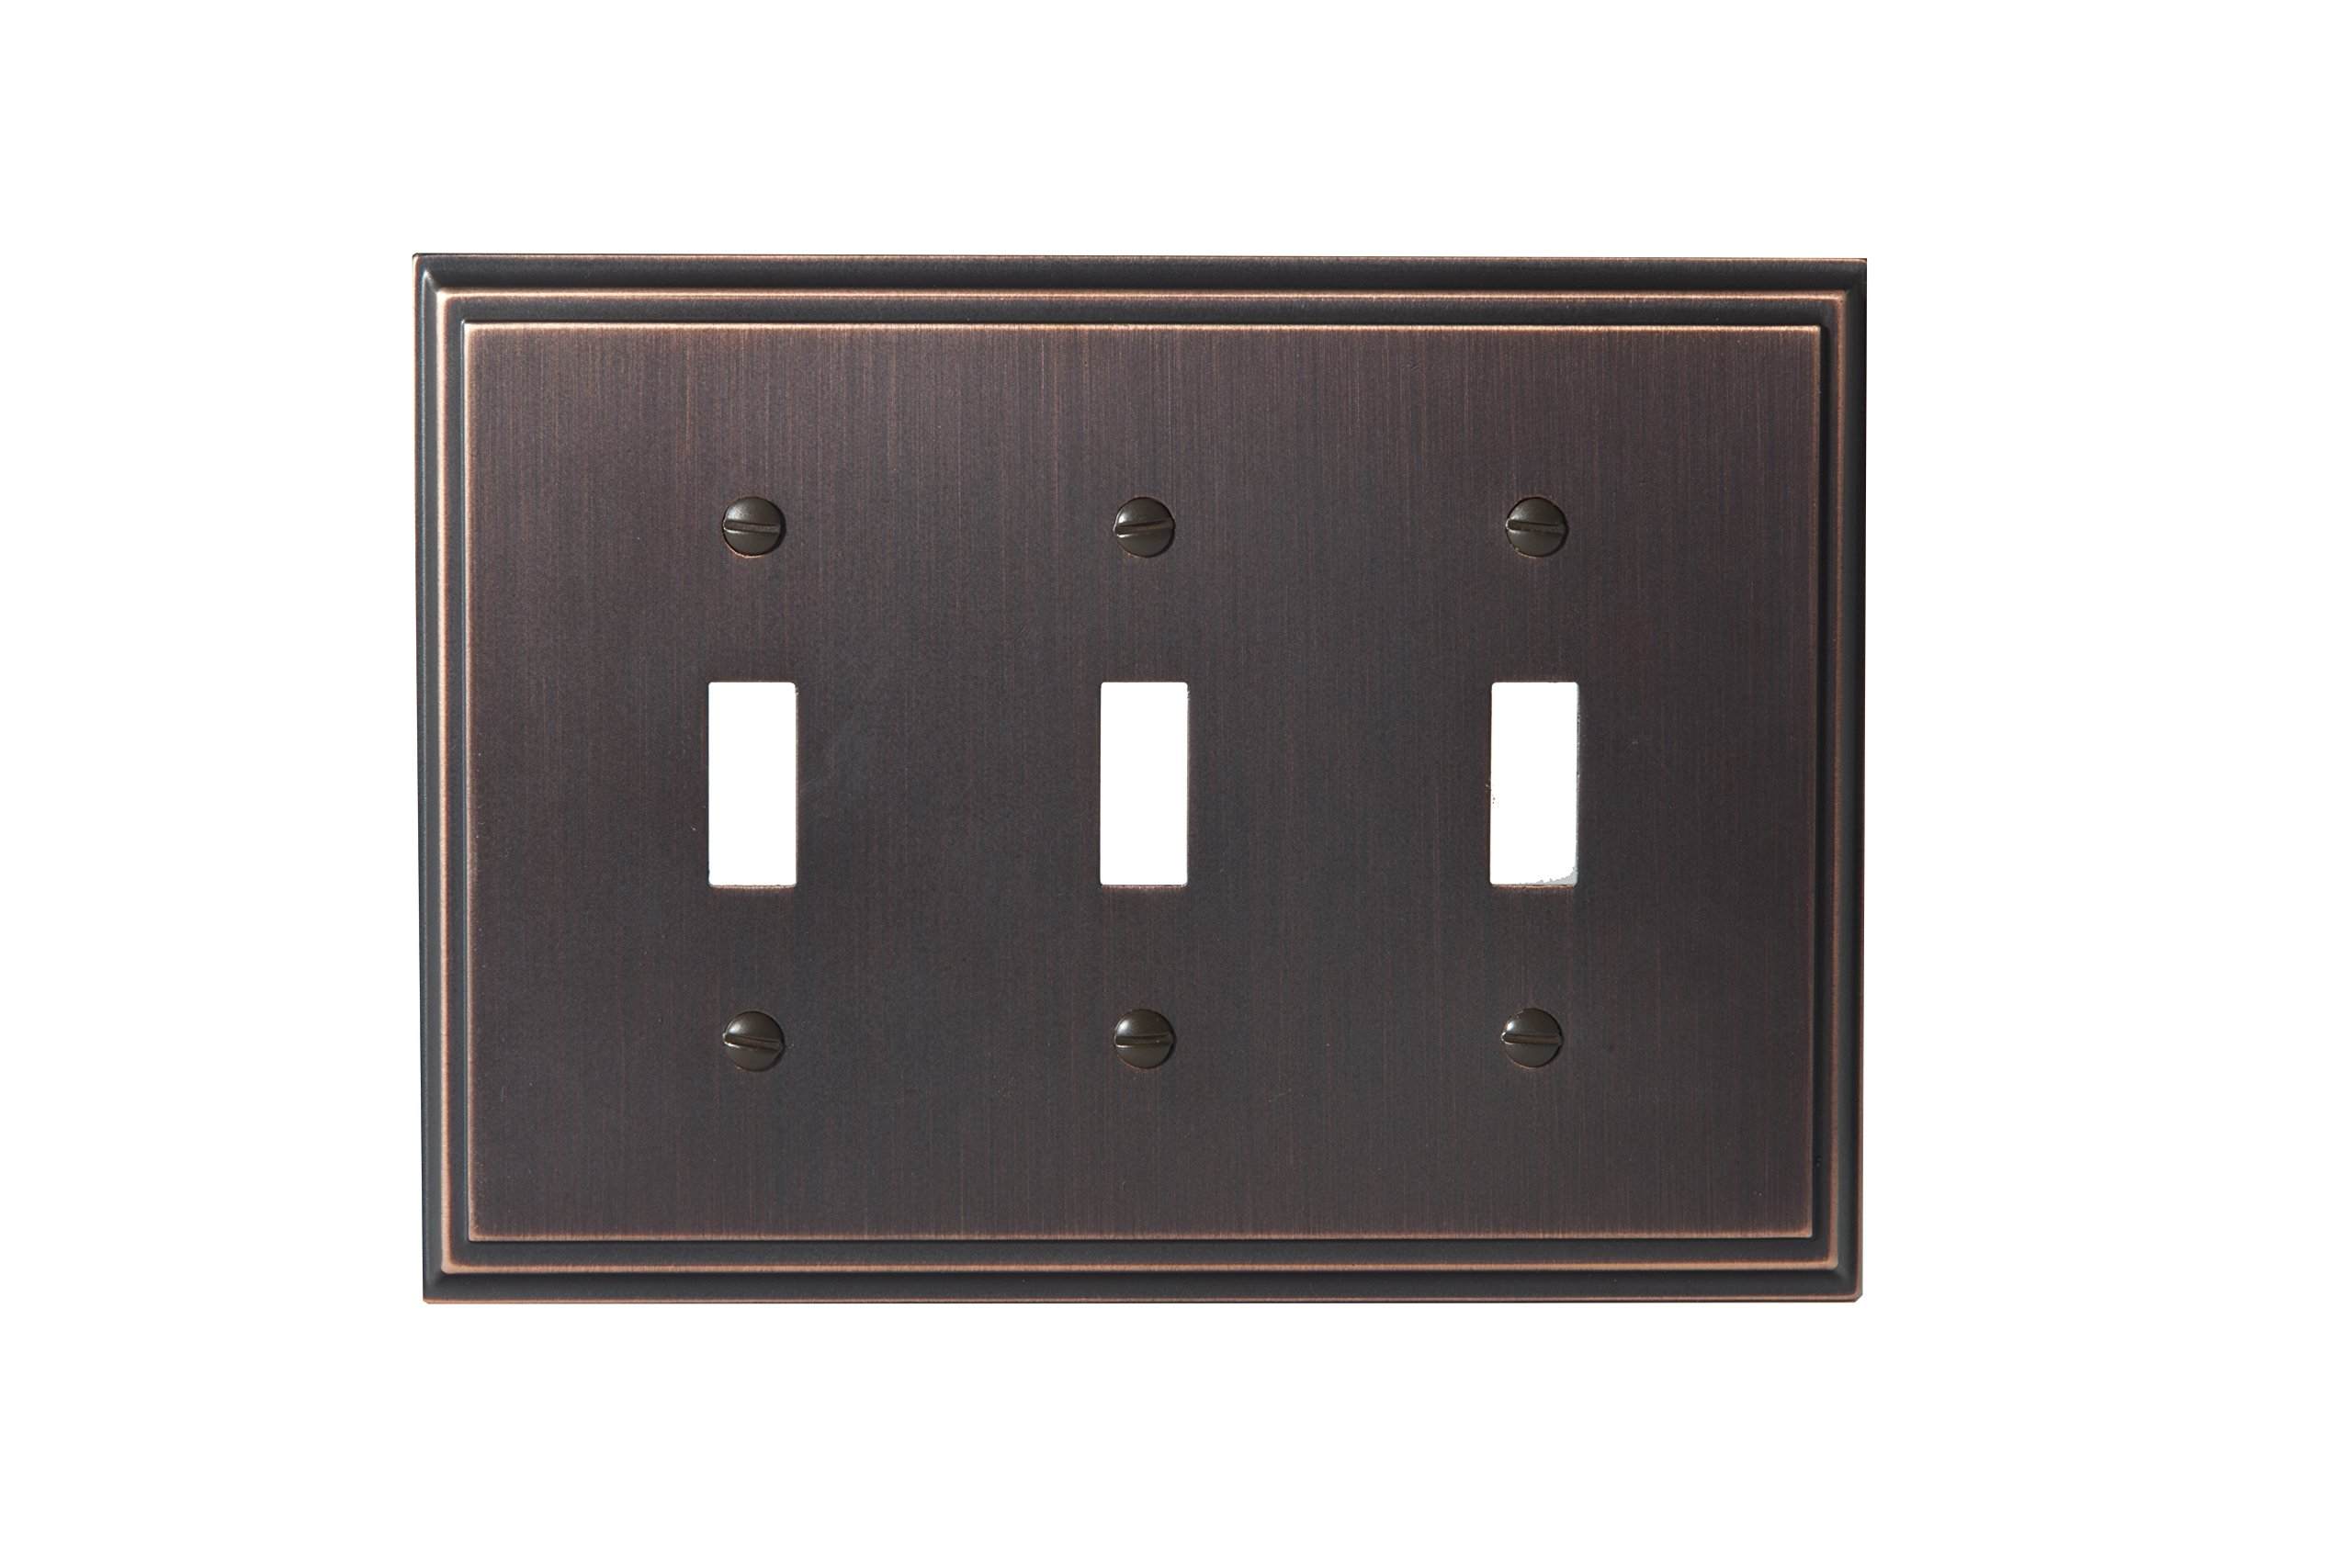 Amerock BP36516ORB Mulholland 3 Toggle Wall Plate - Oil-Rubbed Bronze by Amerock